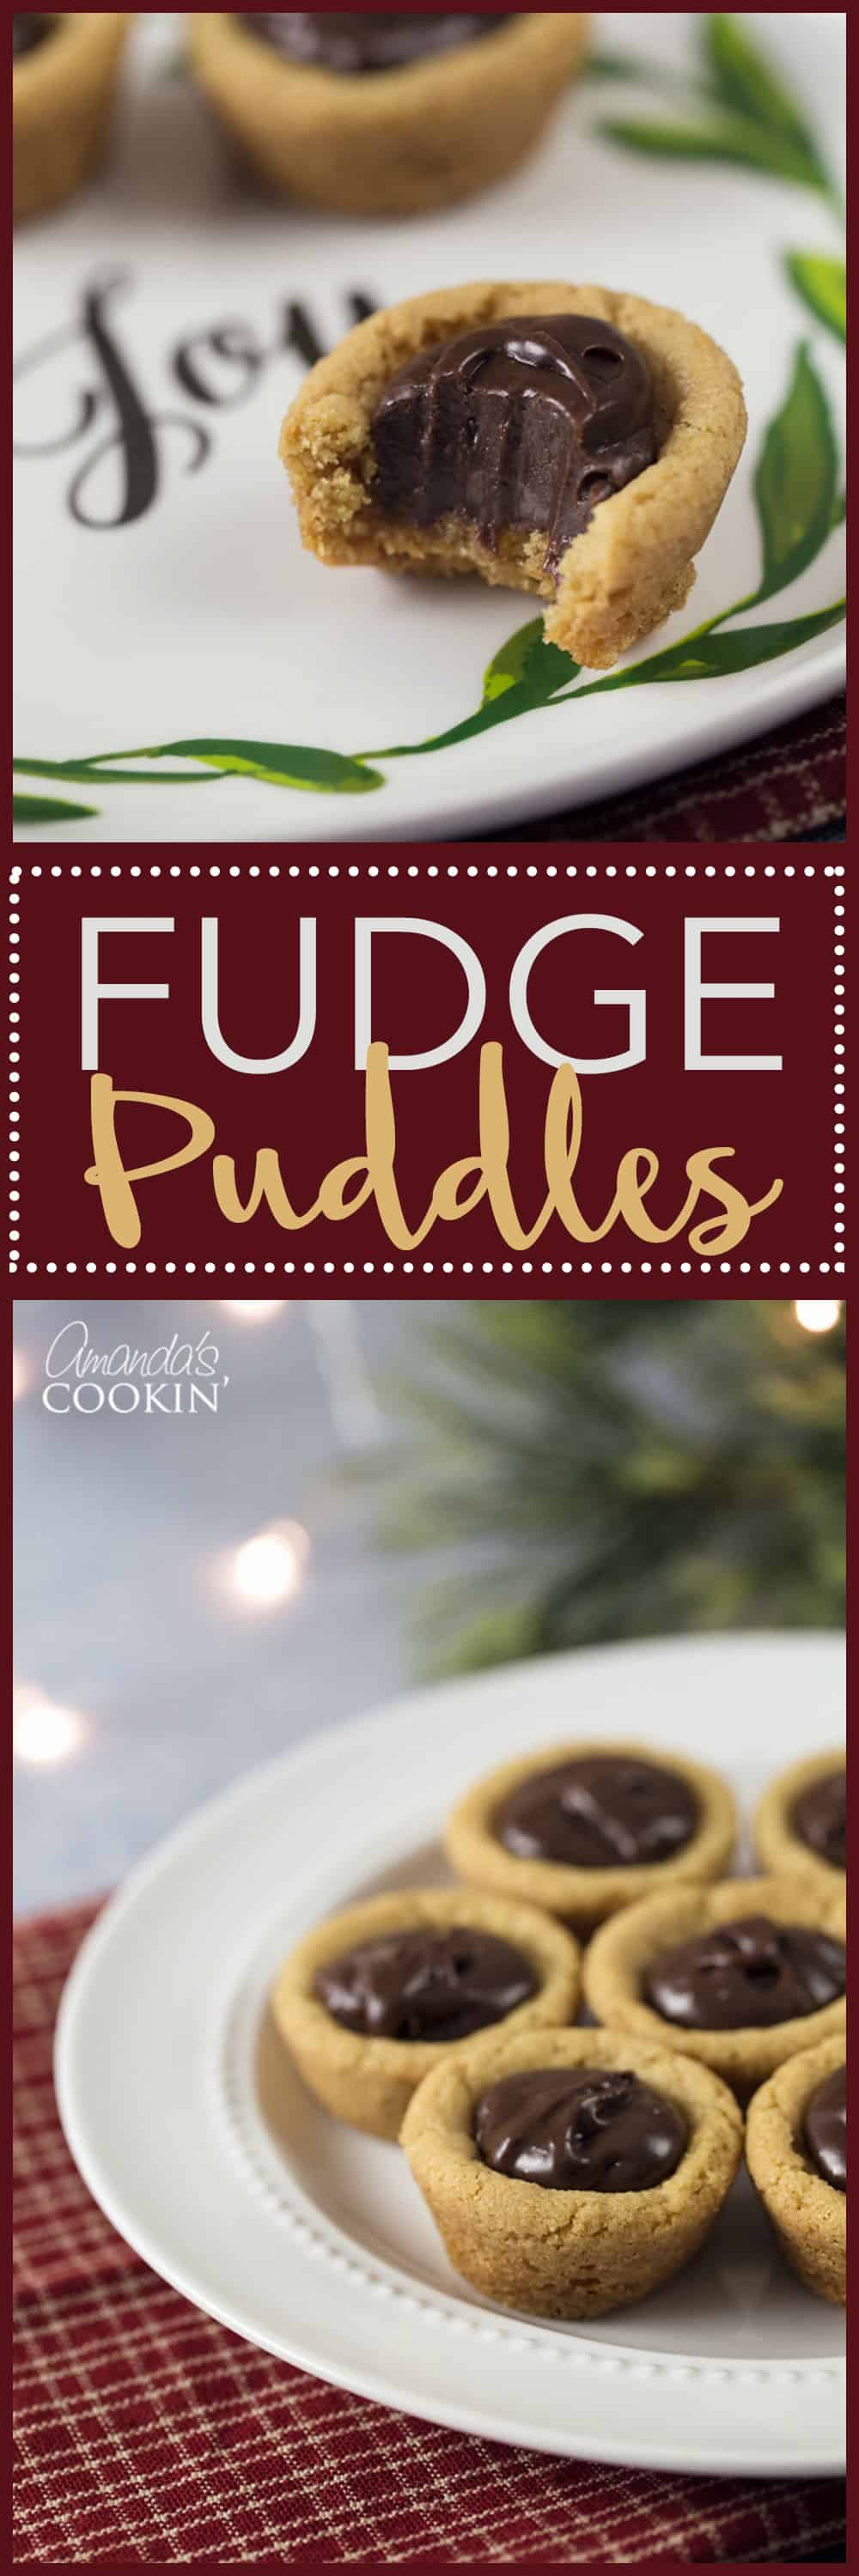 Fudge Puddles are these perfect little peanut butter cookie cups filled with a chocolate fudge filling that is absolutely delicious!